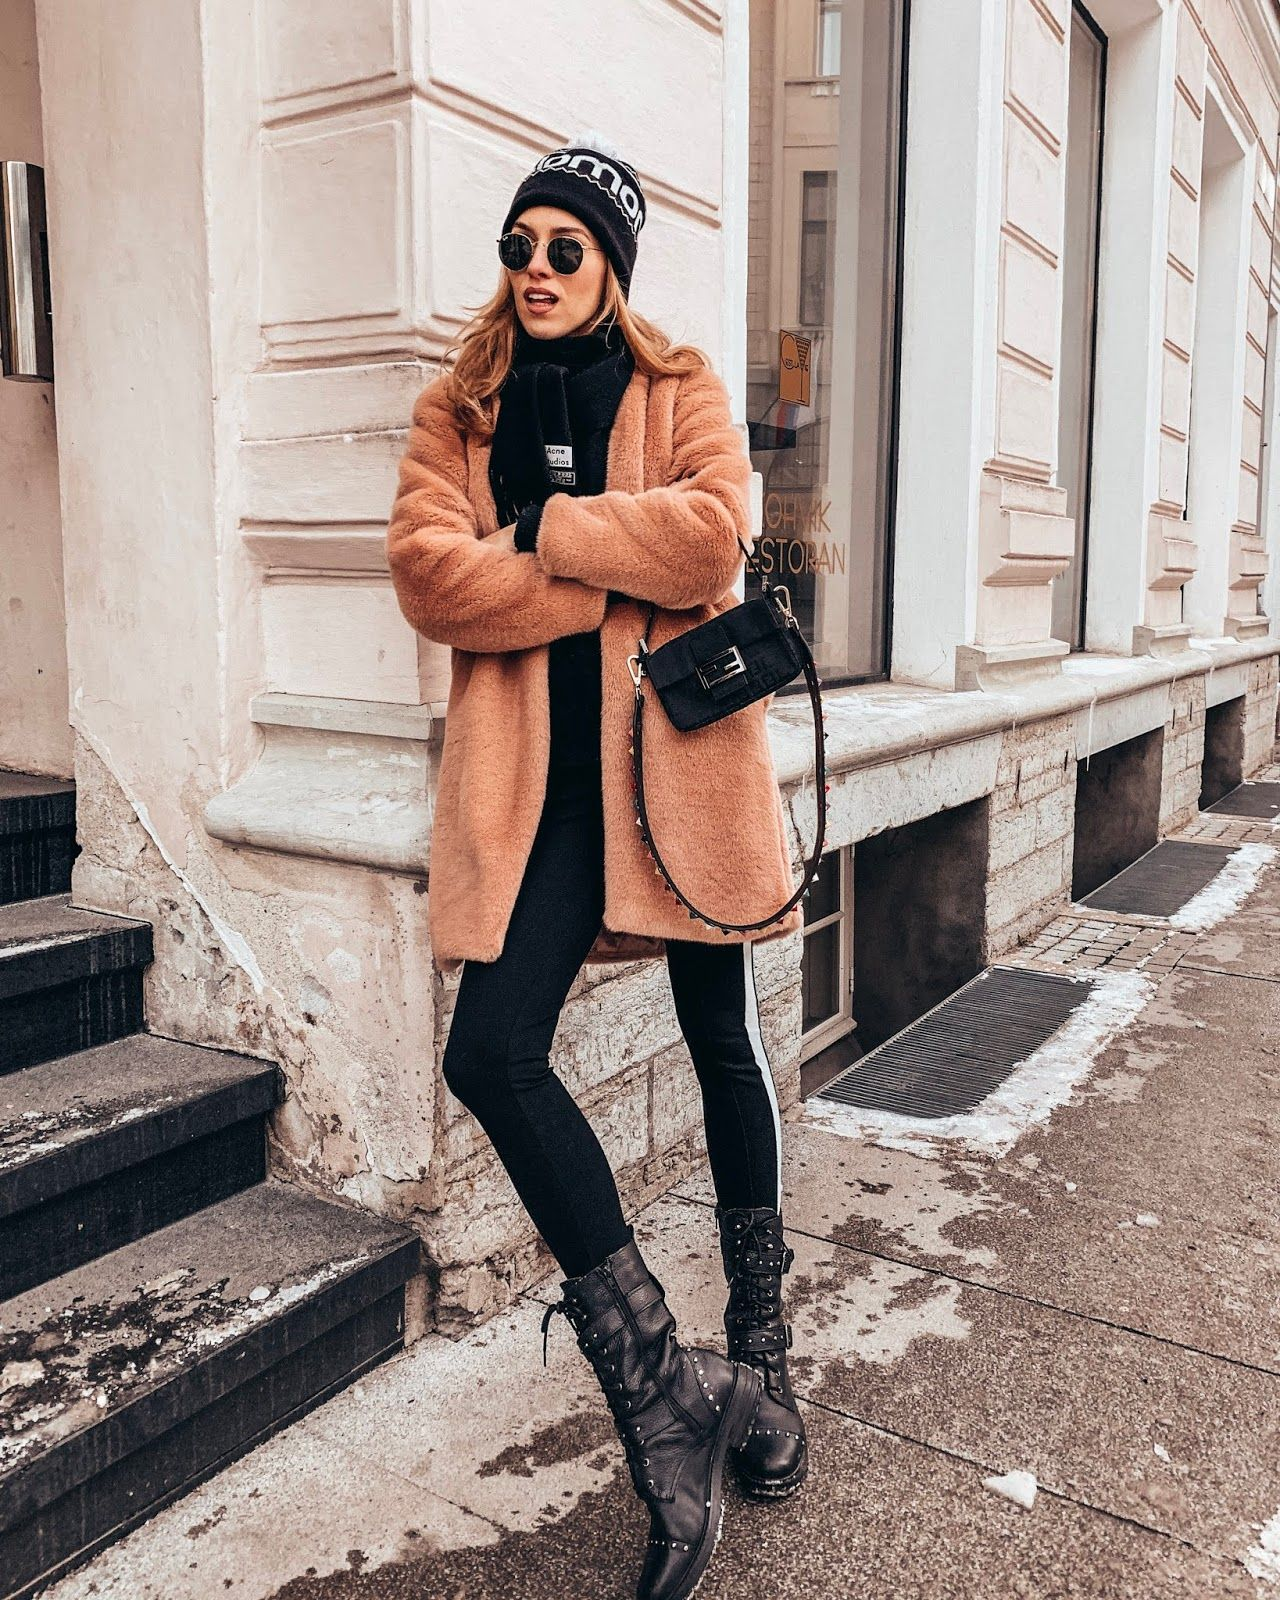 b8fb3c78454 pink faux fur coat acne scarf fendi baguette bag ray ban round sunglasses  beanie winter outfit